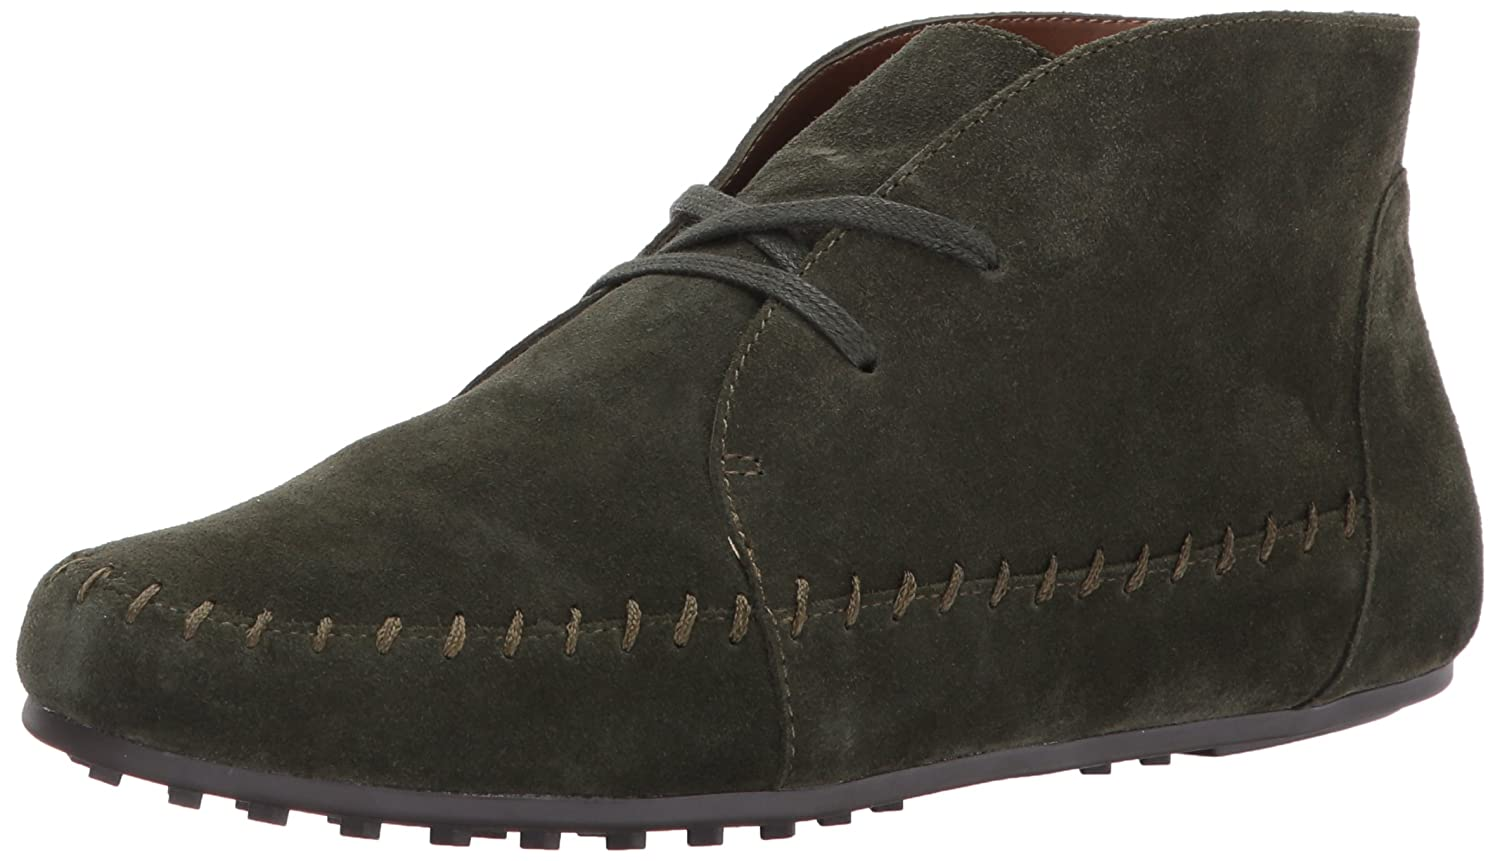 Aerosoles Women's Driving Range Ankle Boot B073P3MCL5 10 B(M) US|Dark Green Suede